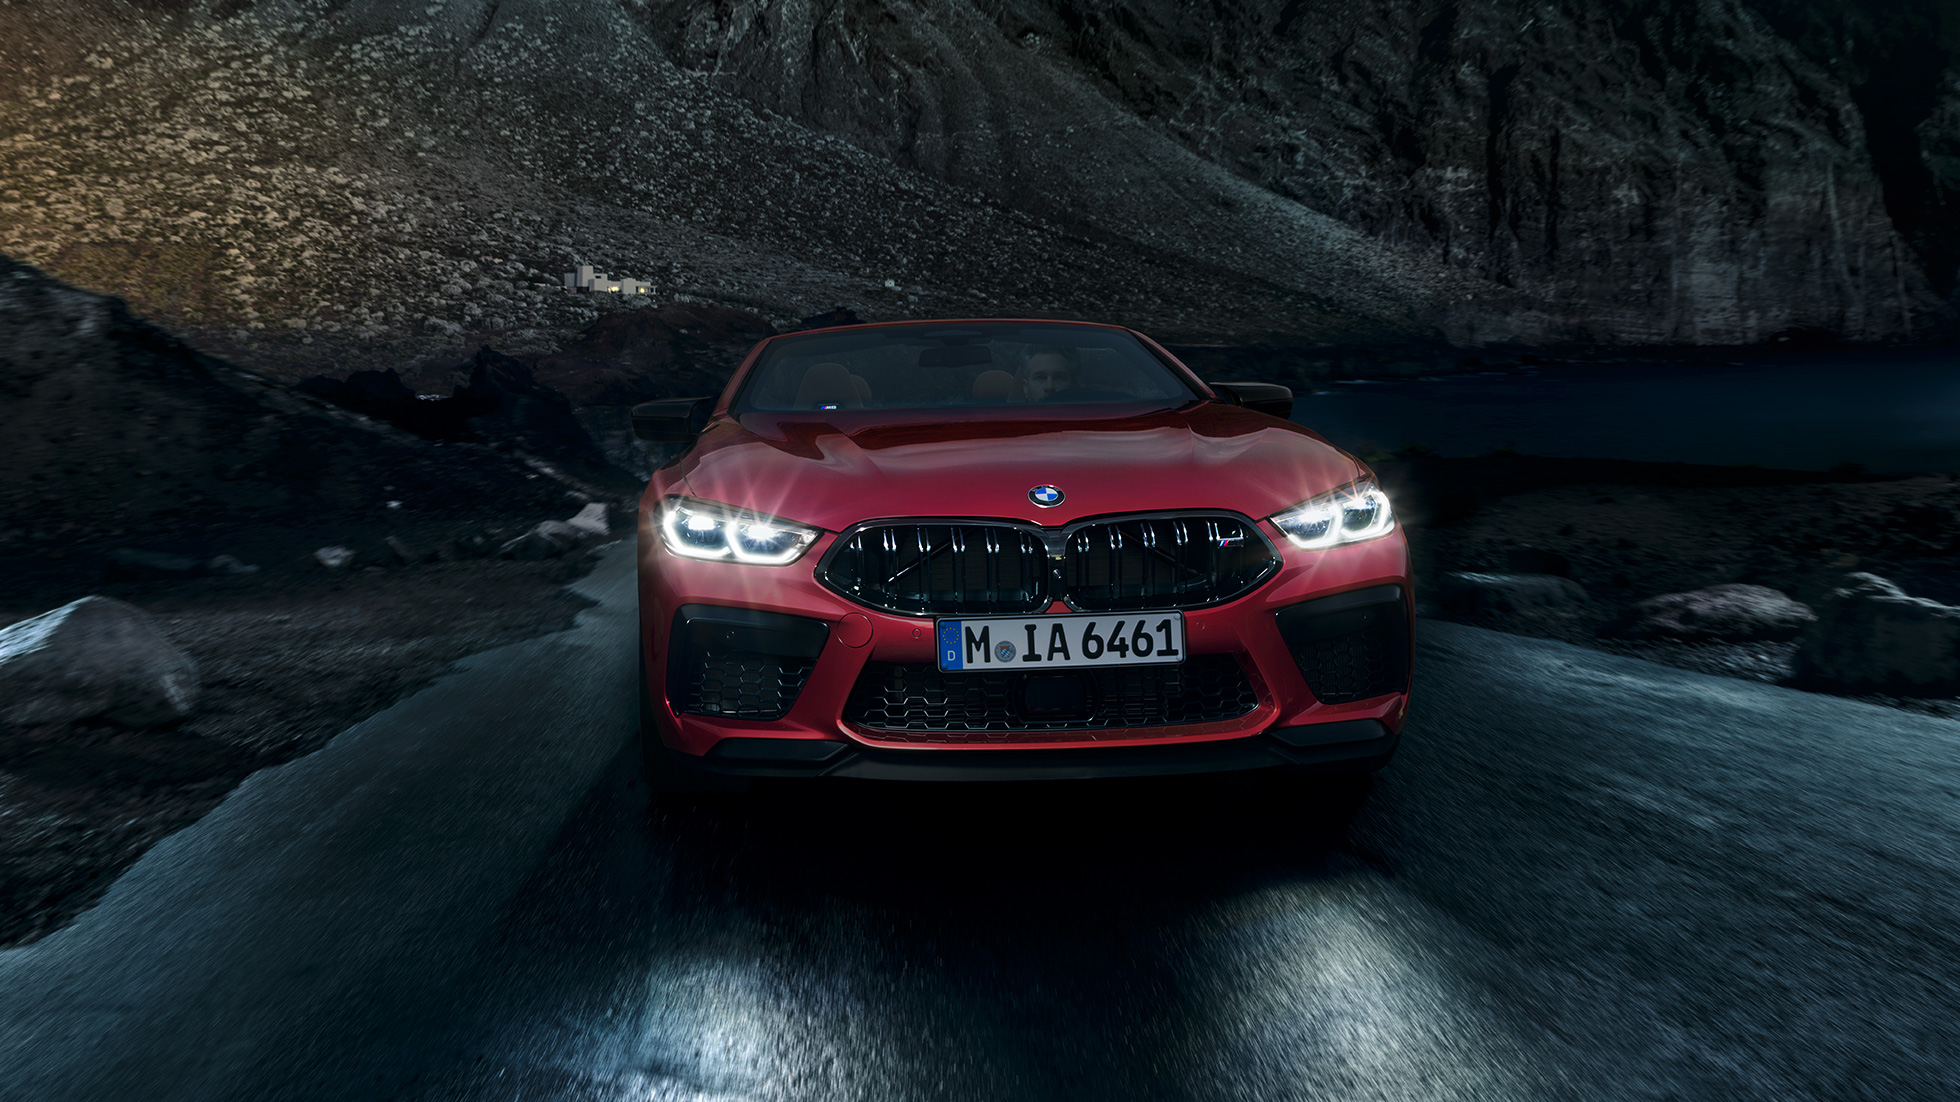 BMW M8 Competition Convertible in Motegi Red metallic with shining headlights, front view, driving at night.